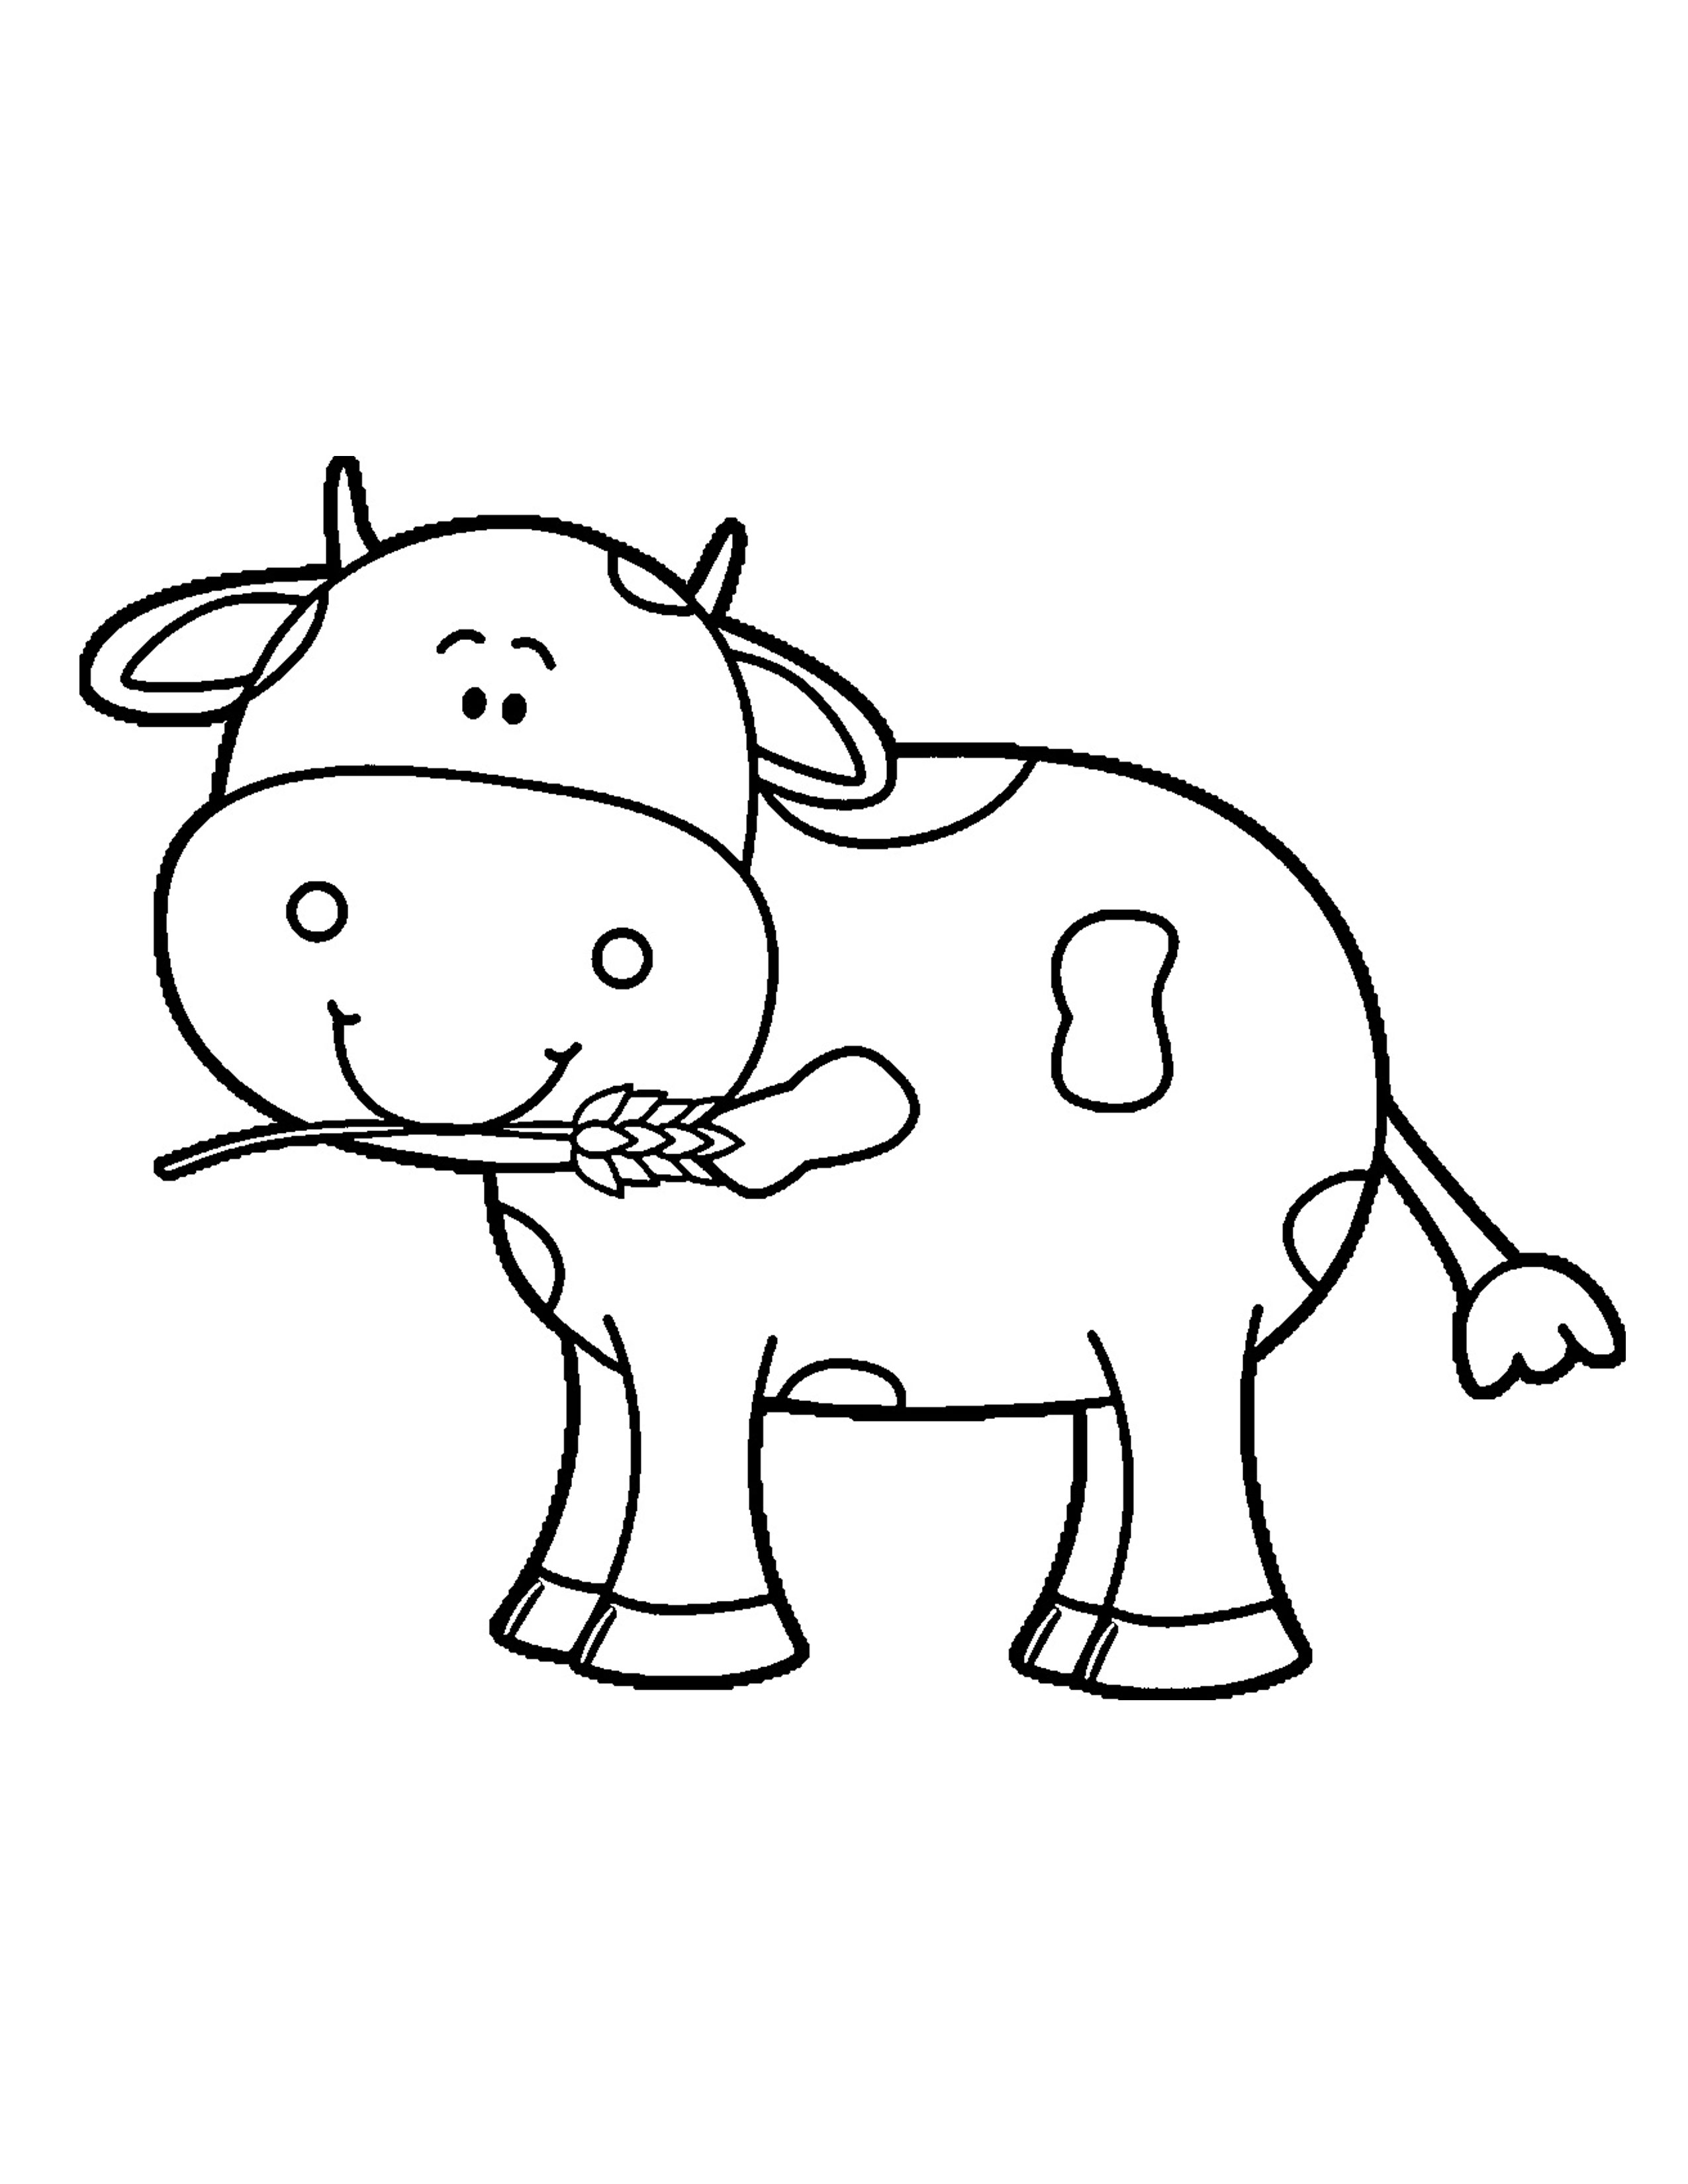 Baby Cow Coloring Pages At Getcolorings